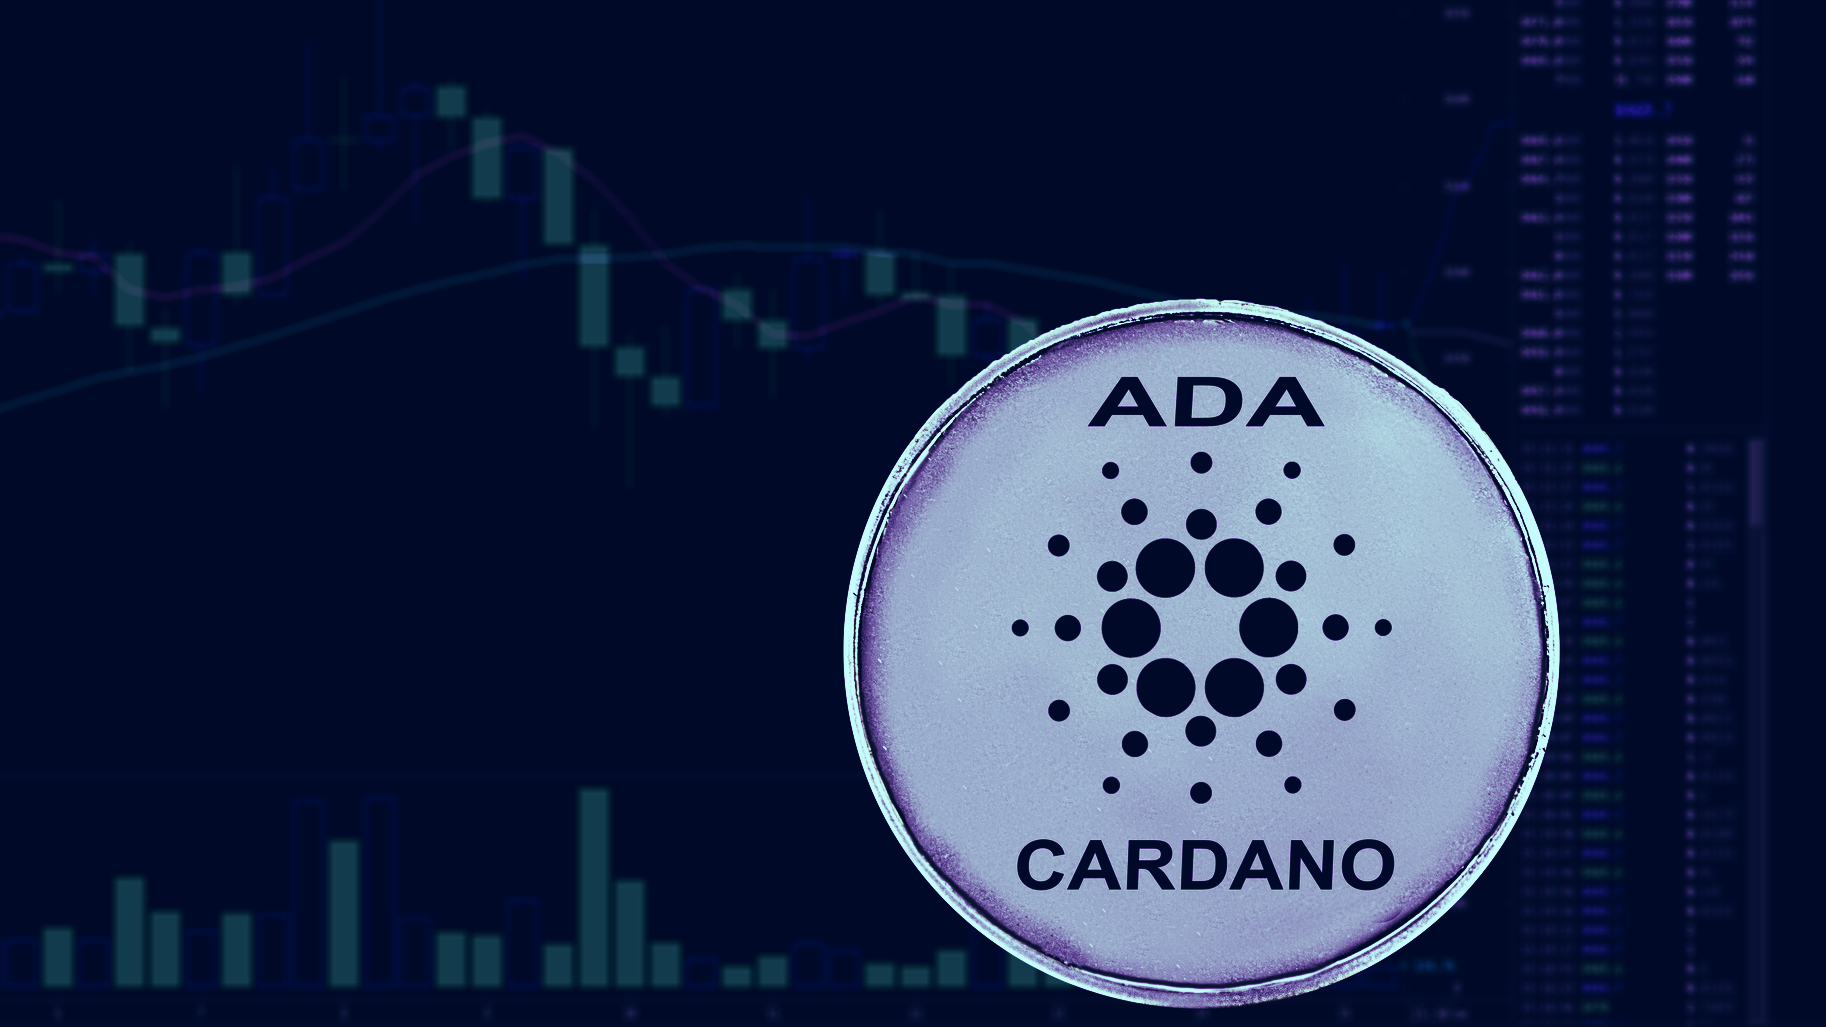 Cardano Reaches All-Time High As Rally Continues